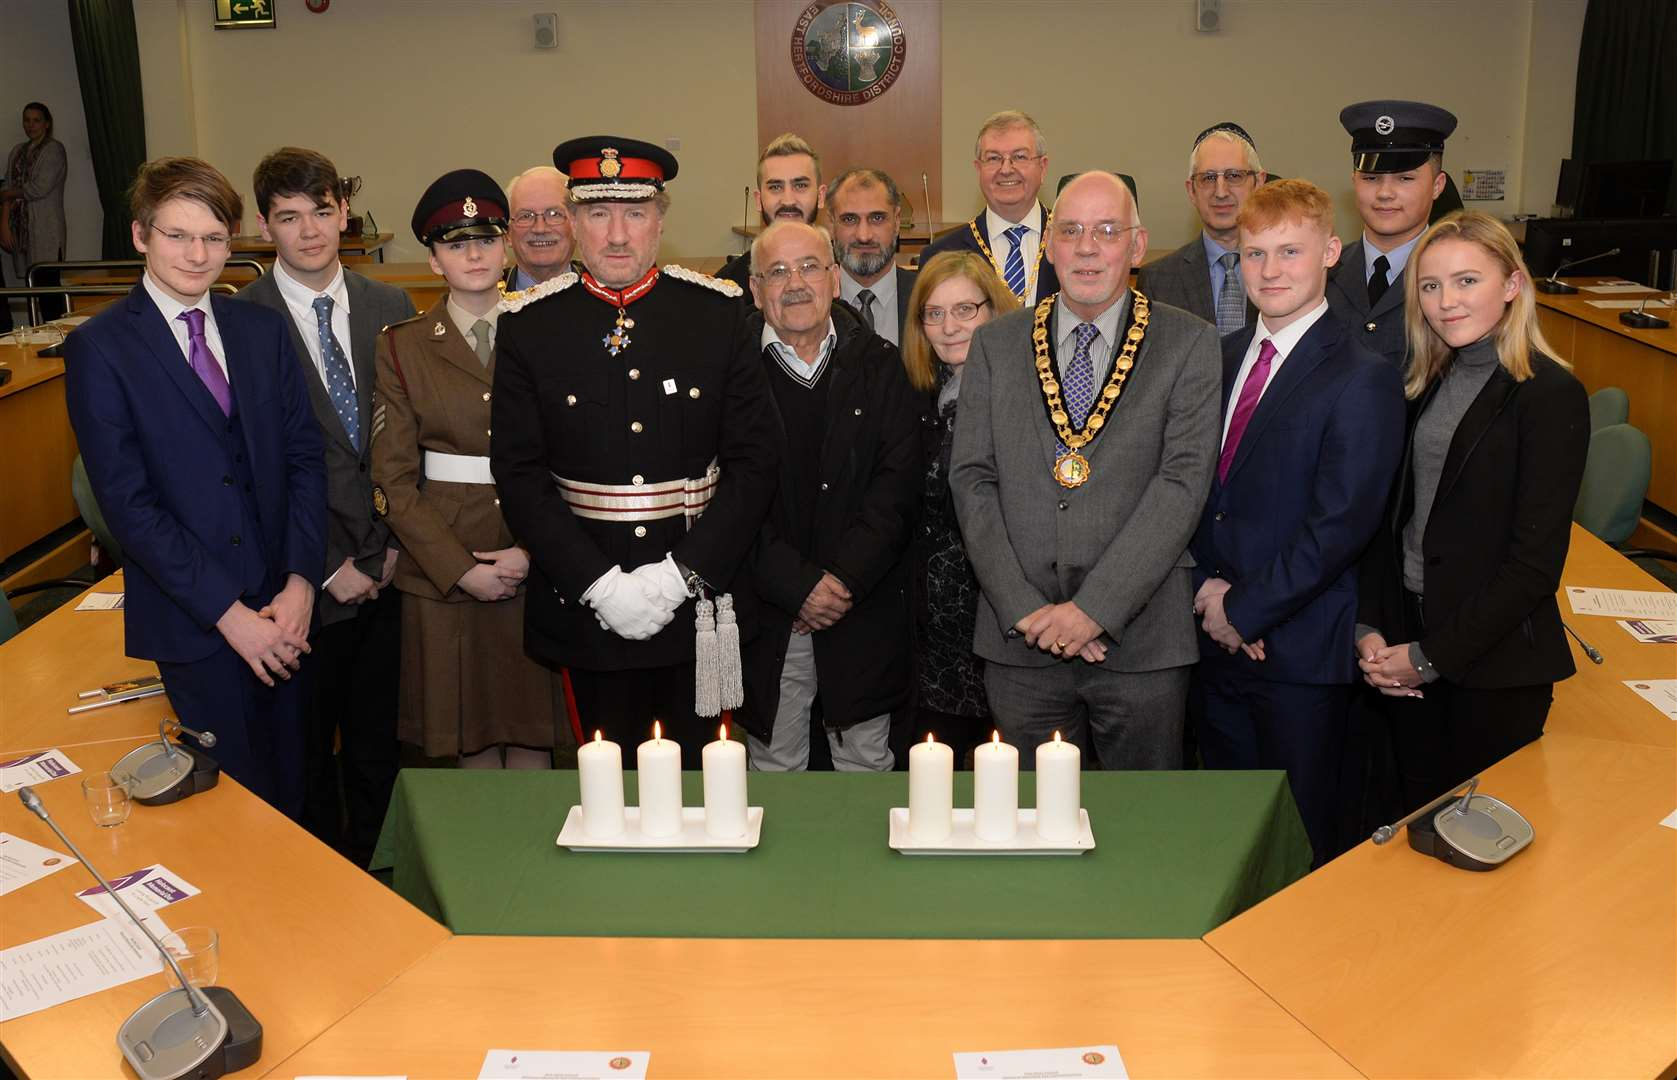 EHDC Offices, Wallfields, Hertford. Holocaust Memorial. Lord Lt. Hertfordshire Robert Voss and Chair of EHDC Keith Warnell with guests and speakers at the Memorial event. .Pic: Vikki Lince. (6829328)